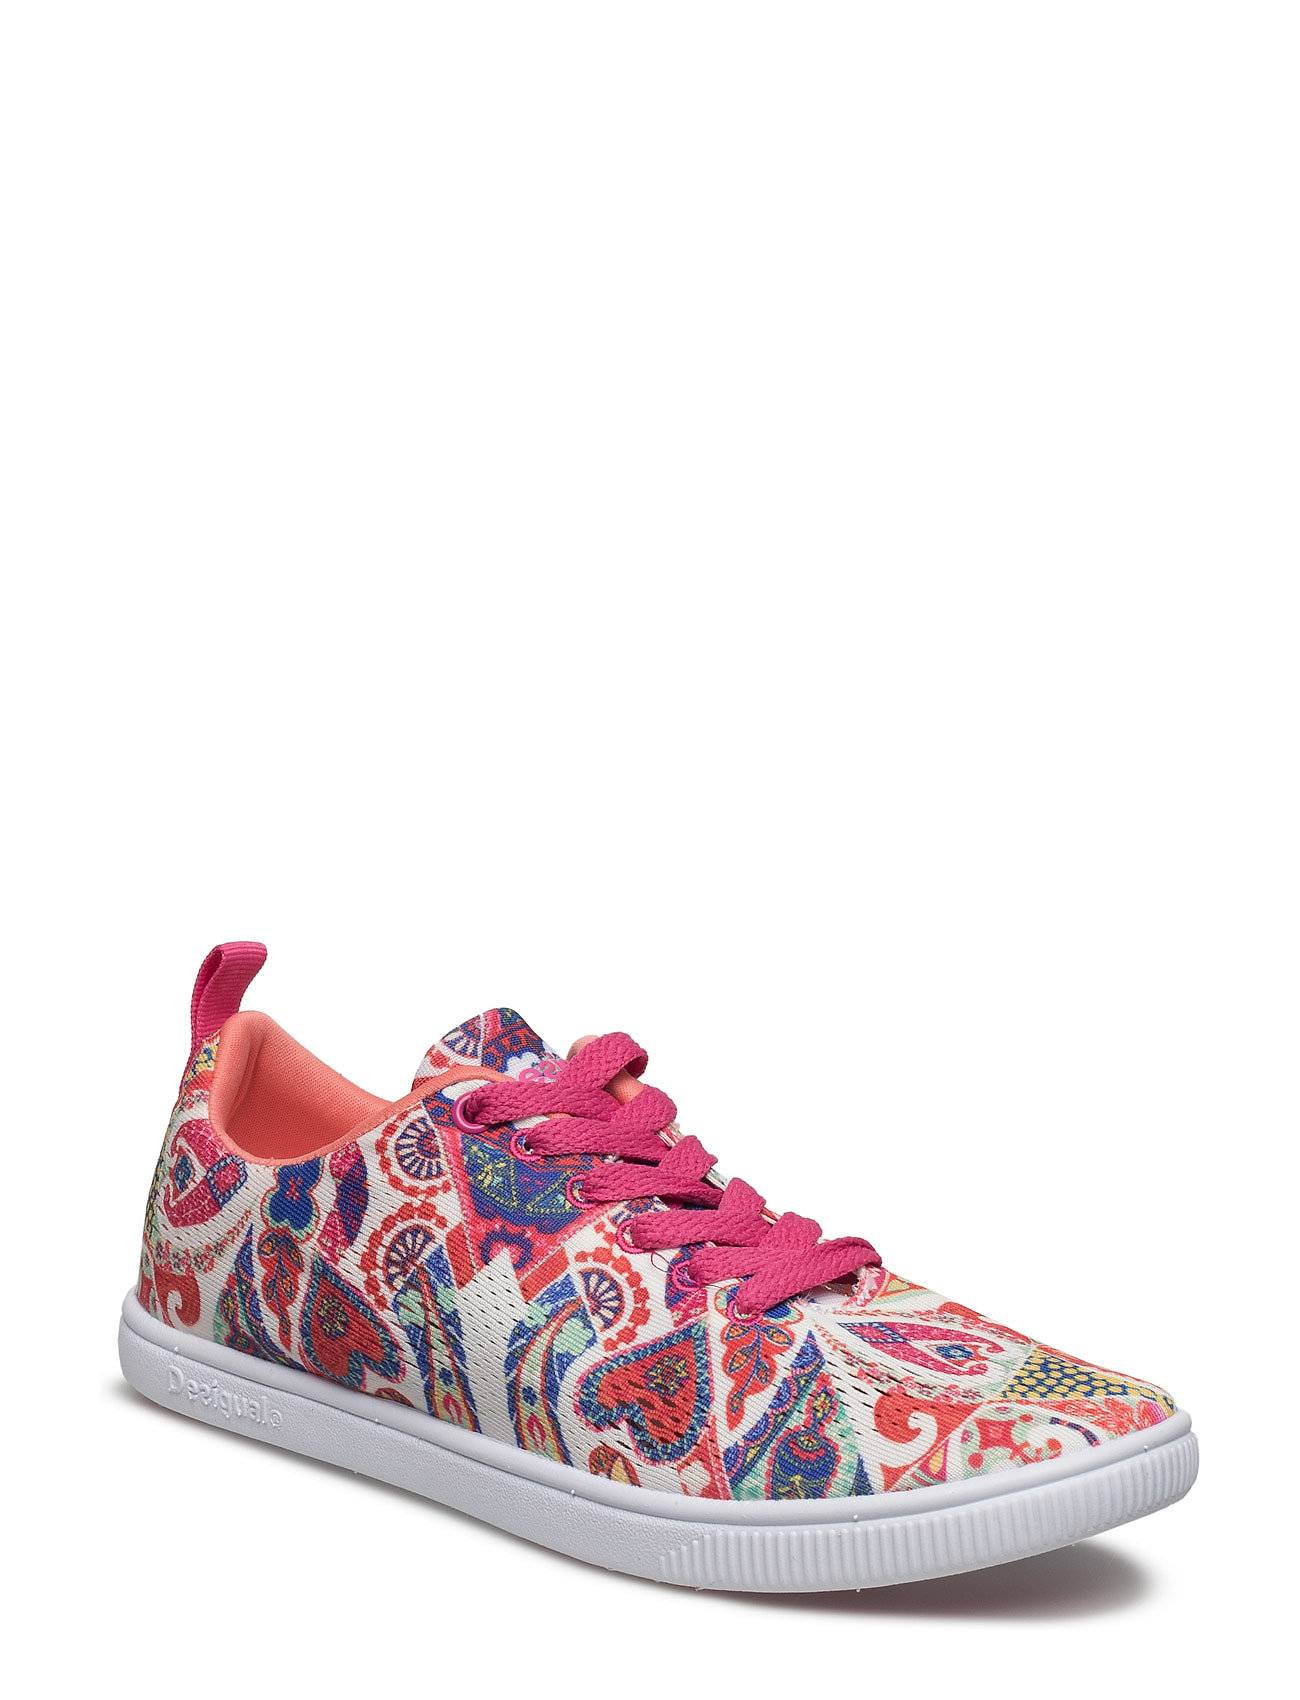 Desigual Shoes Shoes Camden Hearts